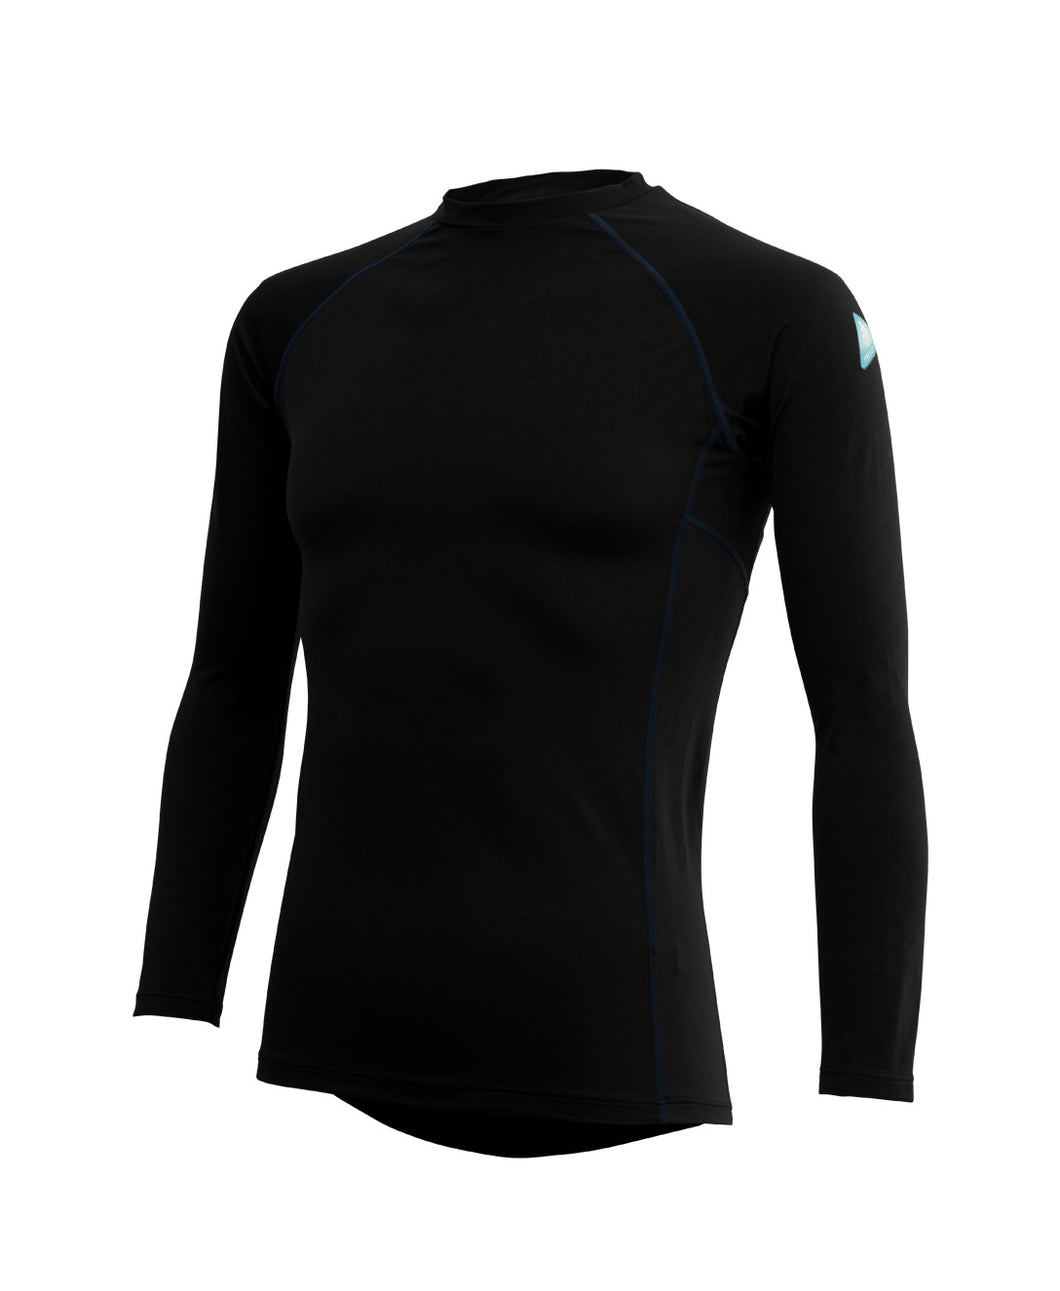 Freeze Tech Shirt, Long Sleeve, Black- Sustained Cold Effect / Quick Dry / Antibacterial & Anti Odour / Anti UV